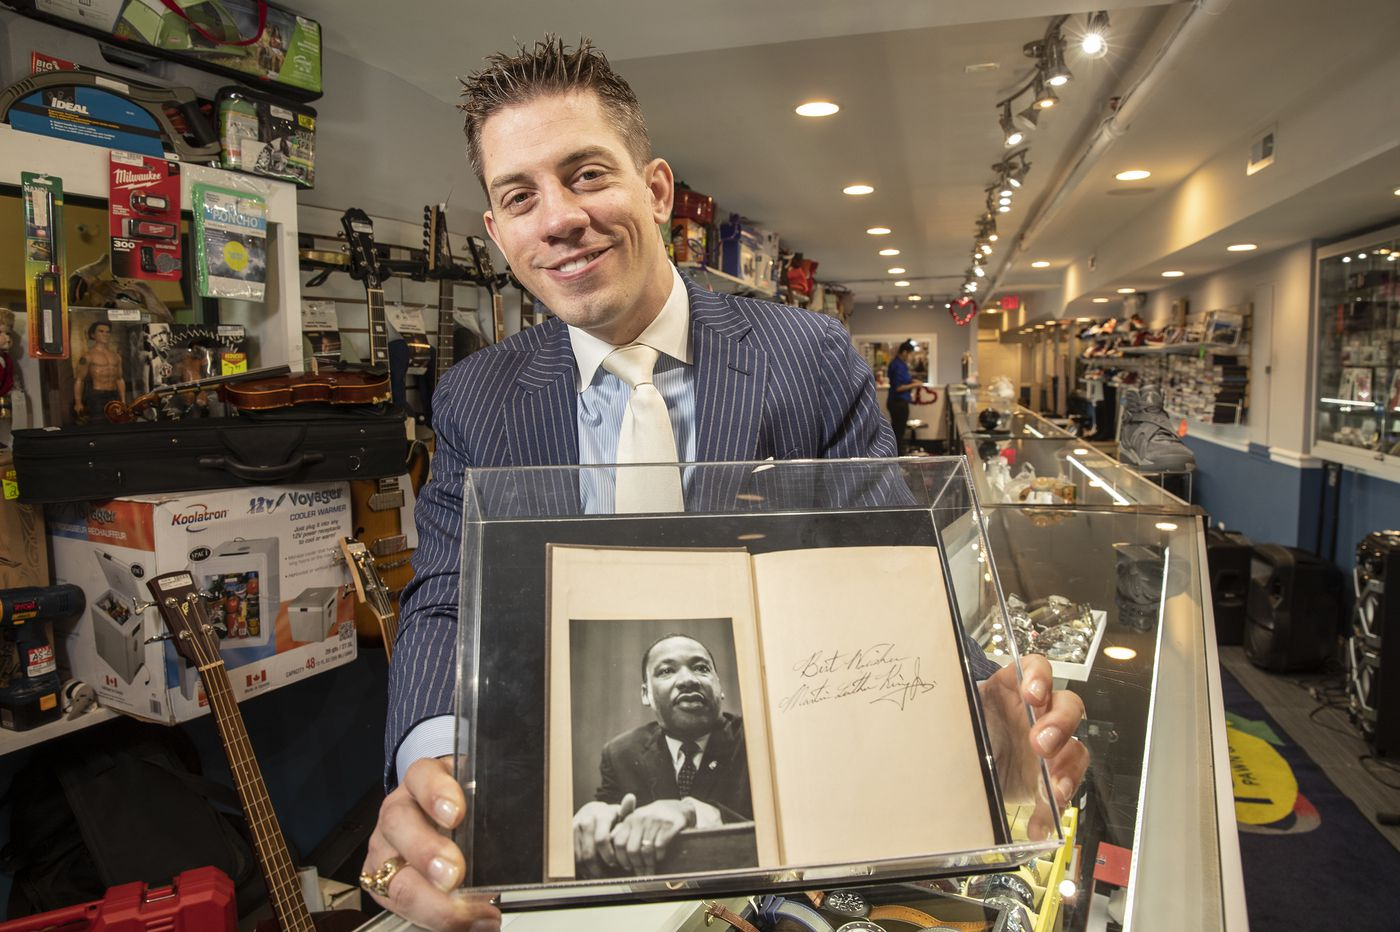 A Bible signed by Martin Luther King Jr. is on display at a S. Philly pawn shop